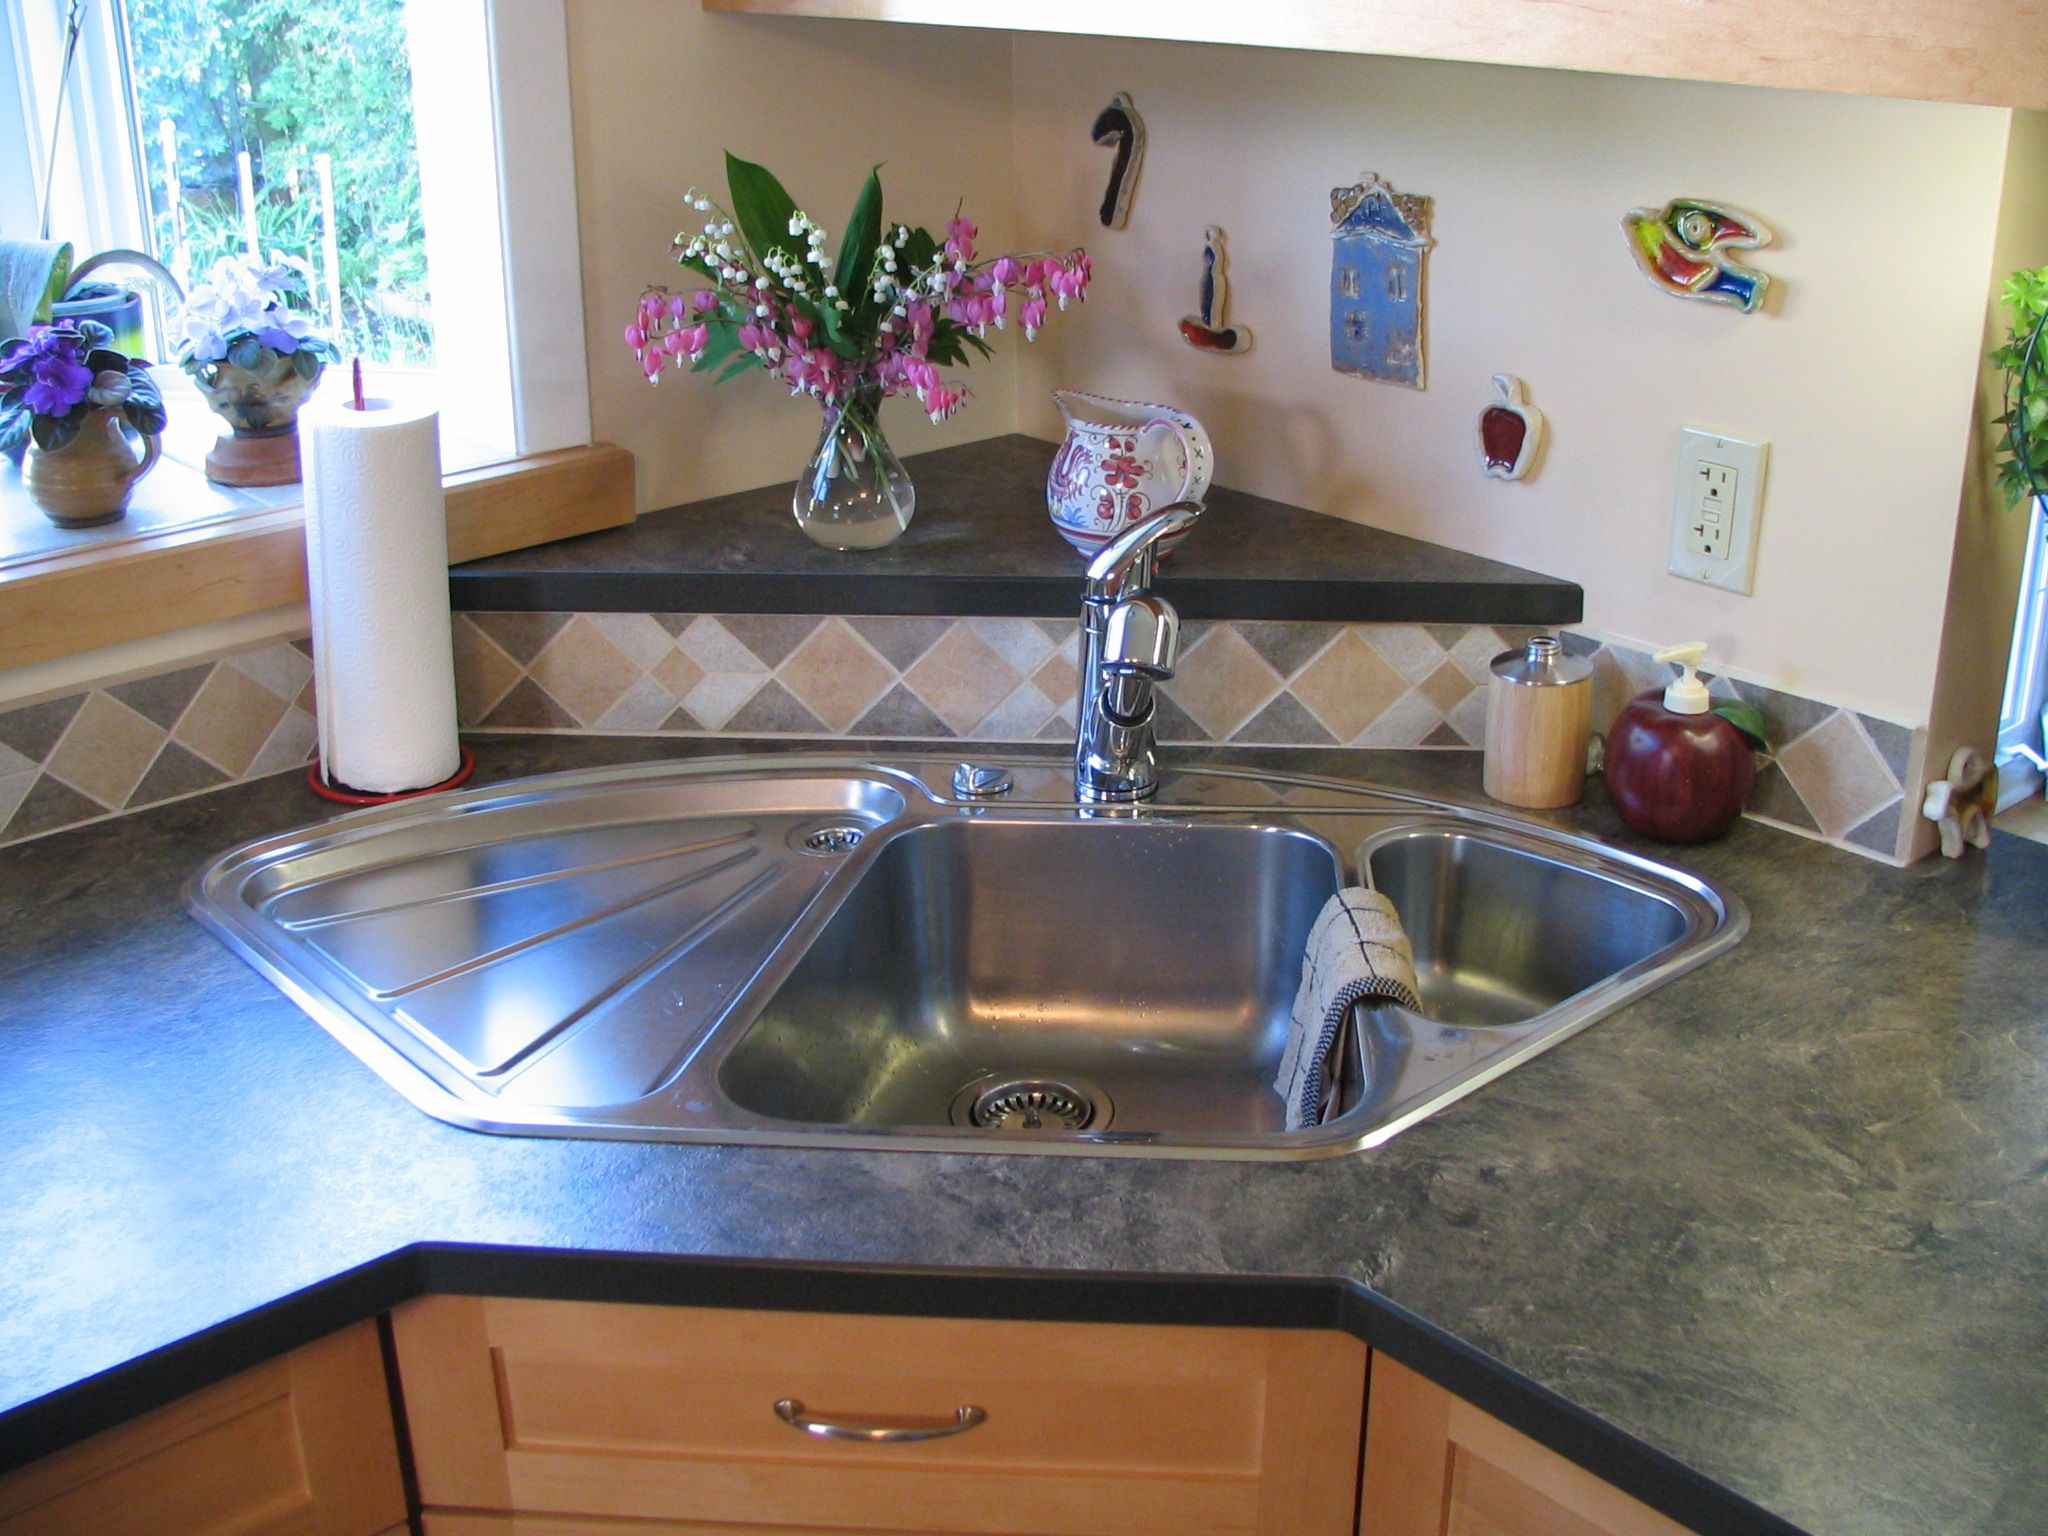 How To Cut Sink In Laminate Countertop Image Result For How To Support A Corner Freestanding